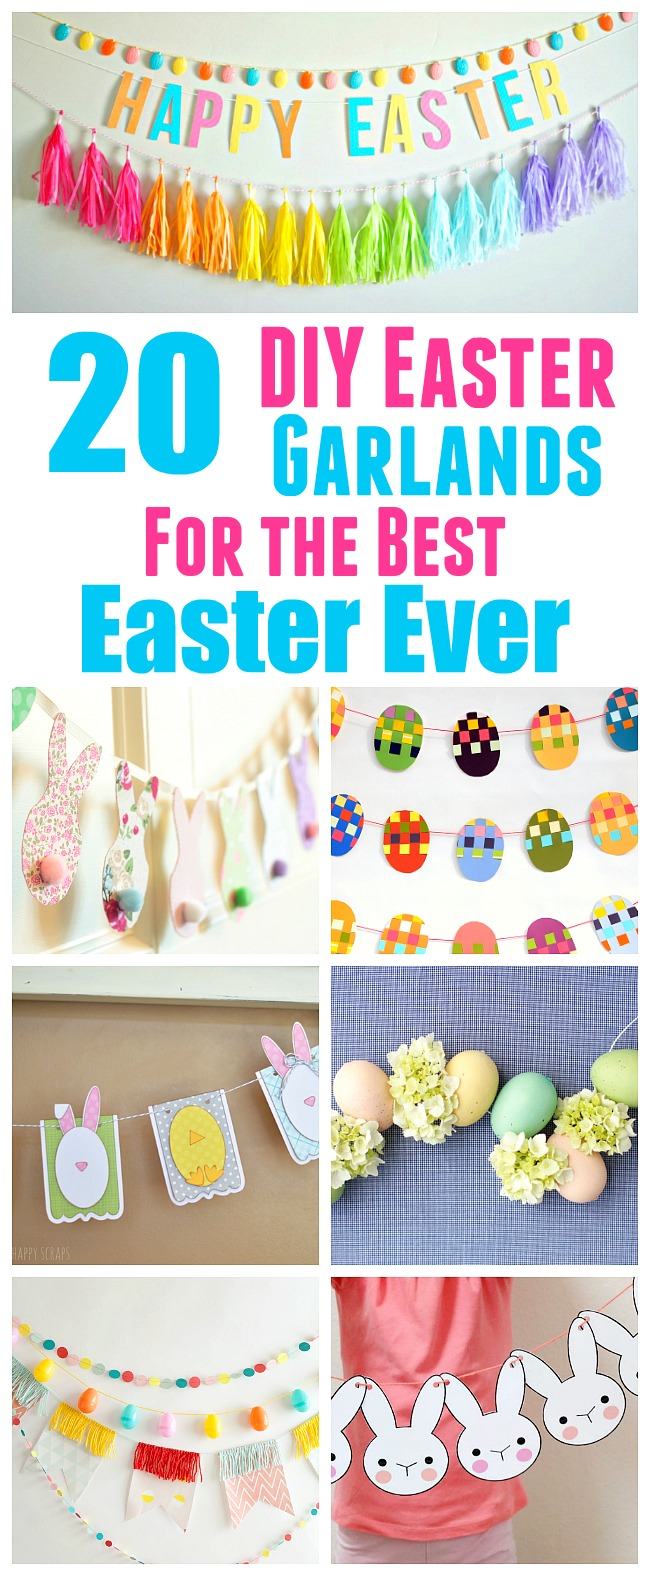 20 Festive DIY Easter Garlands and Banners- You can decorate your home for Easter the frugal way by making one of these DIY Easter garlands and banners! There are many different kinds to choose from. and they're all so easy to make! | Easter decorations, printable decor, rabbit, bunny, eggs, seasonal decor, #DIY #craft #spring #Easter